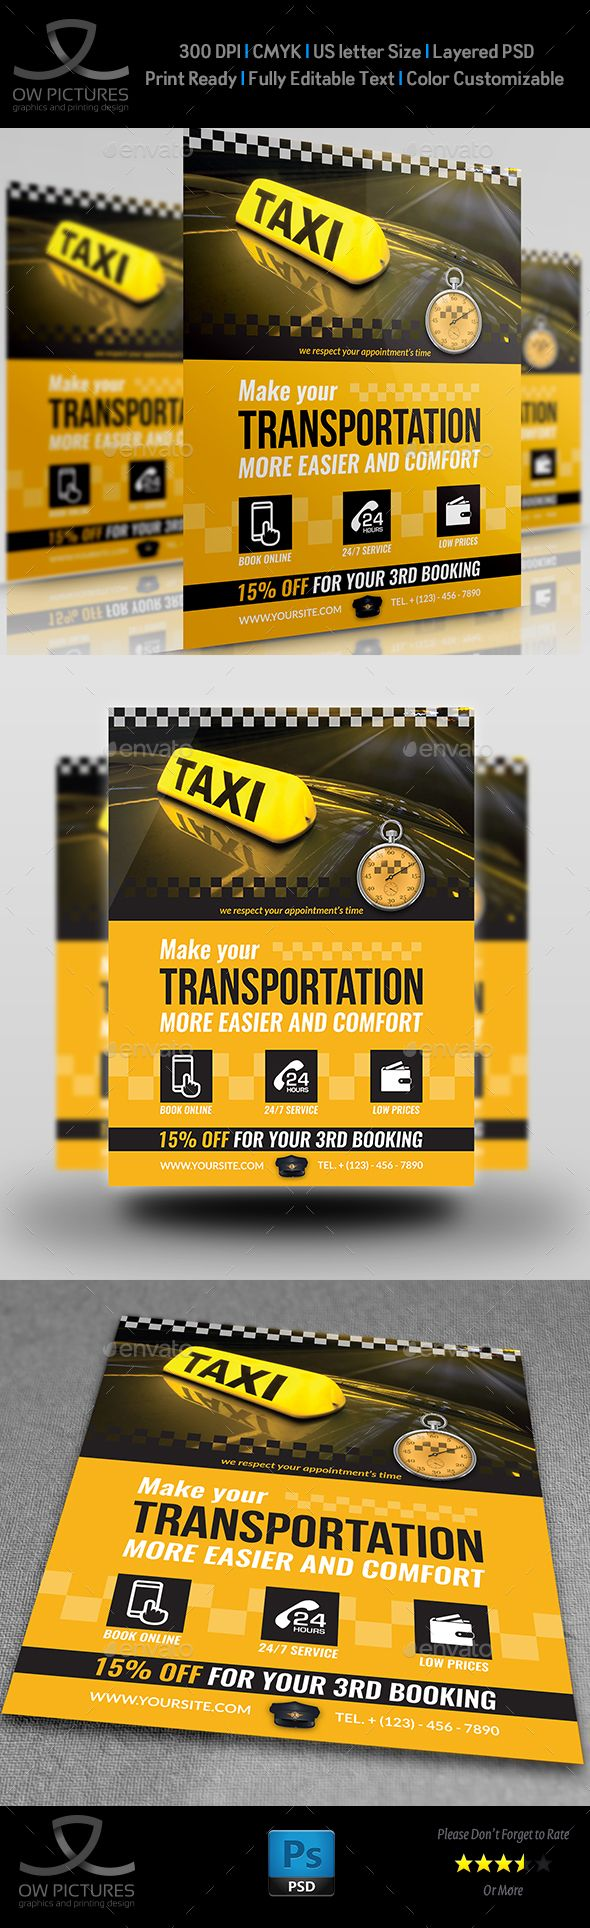 Taxi Service Flyer Template PSD. Download here: http://graphicriver.net/item/taxi-service-flyer-template/16577887?ref=ksioks